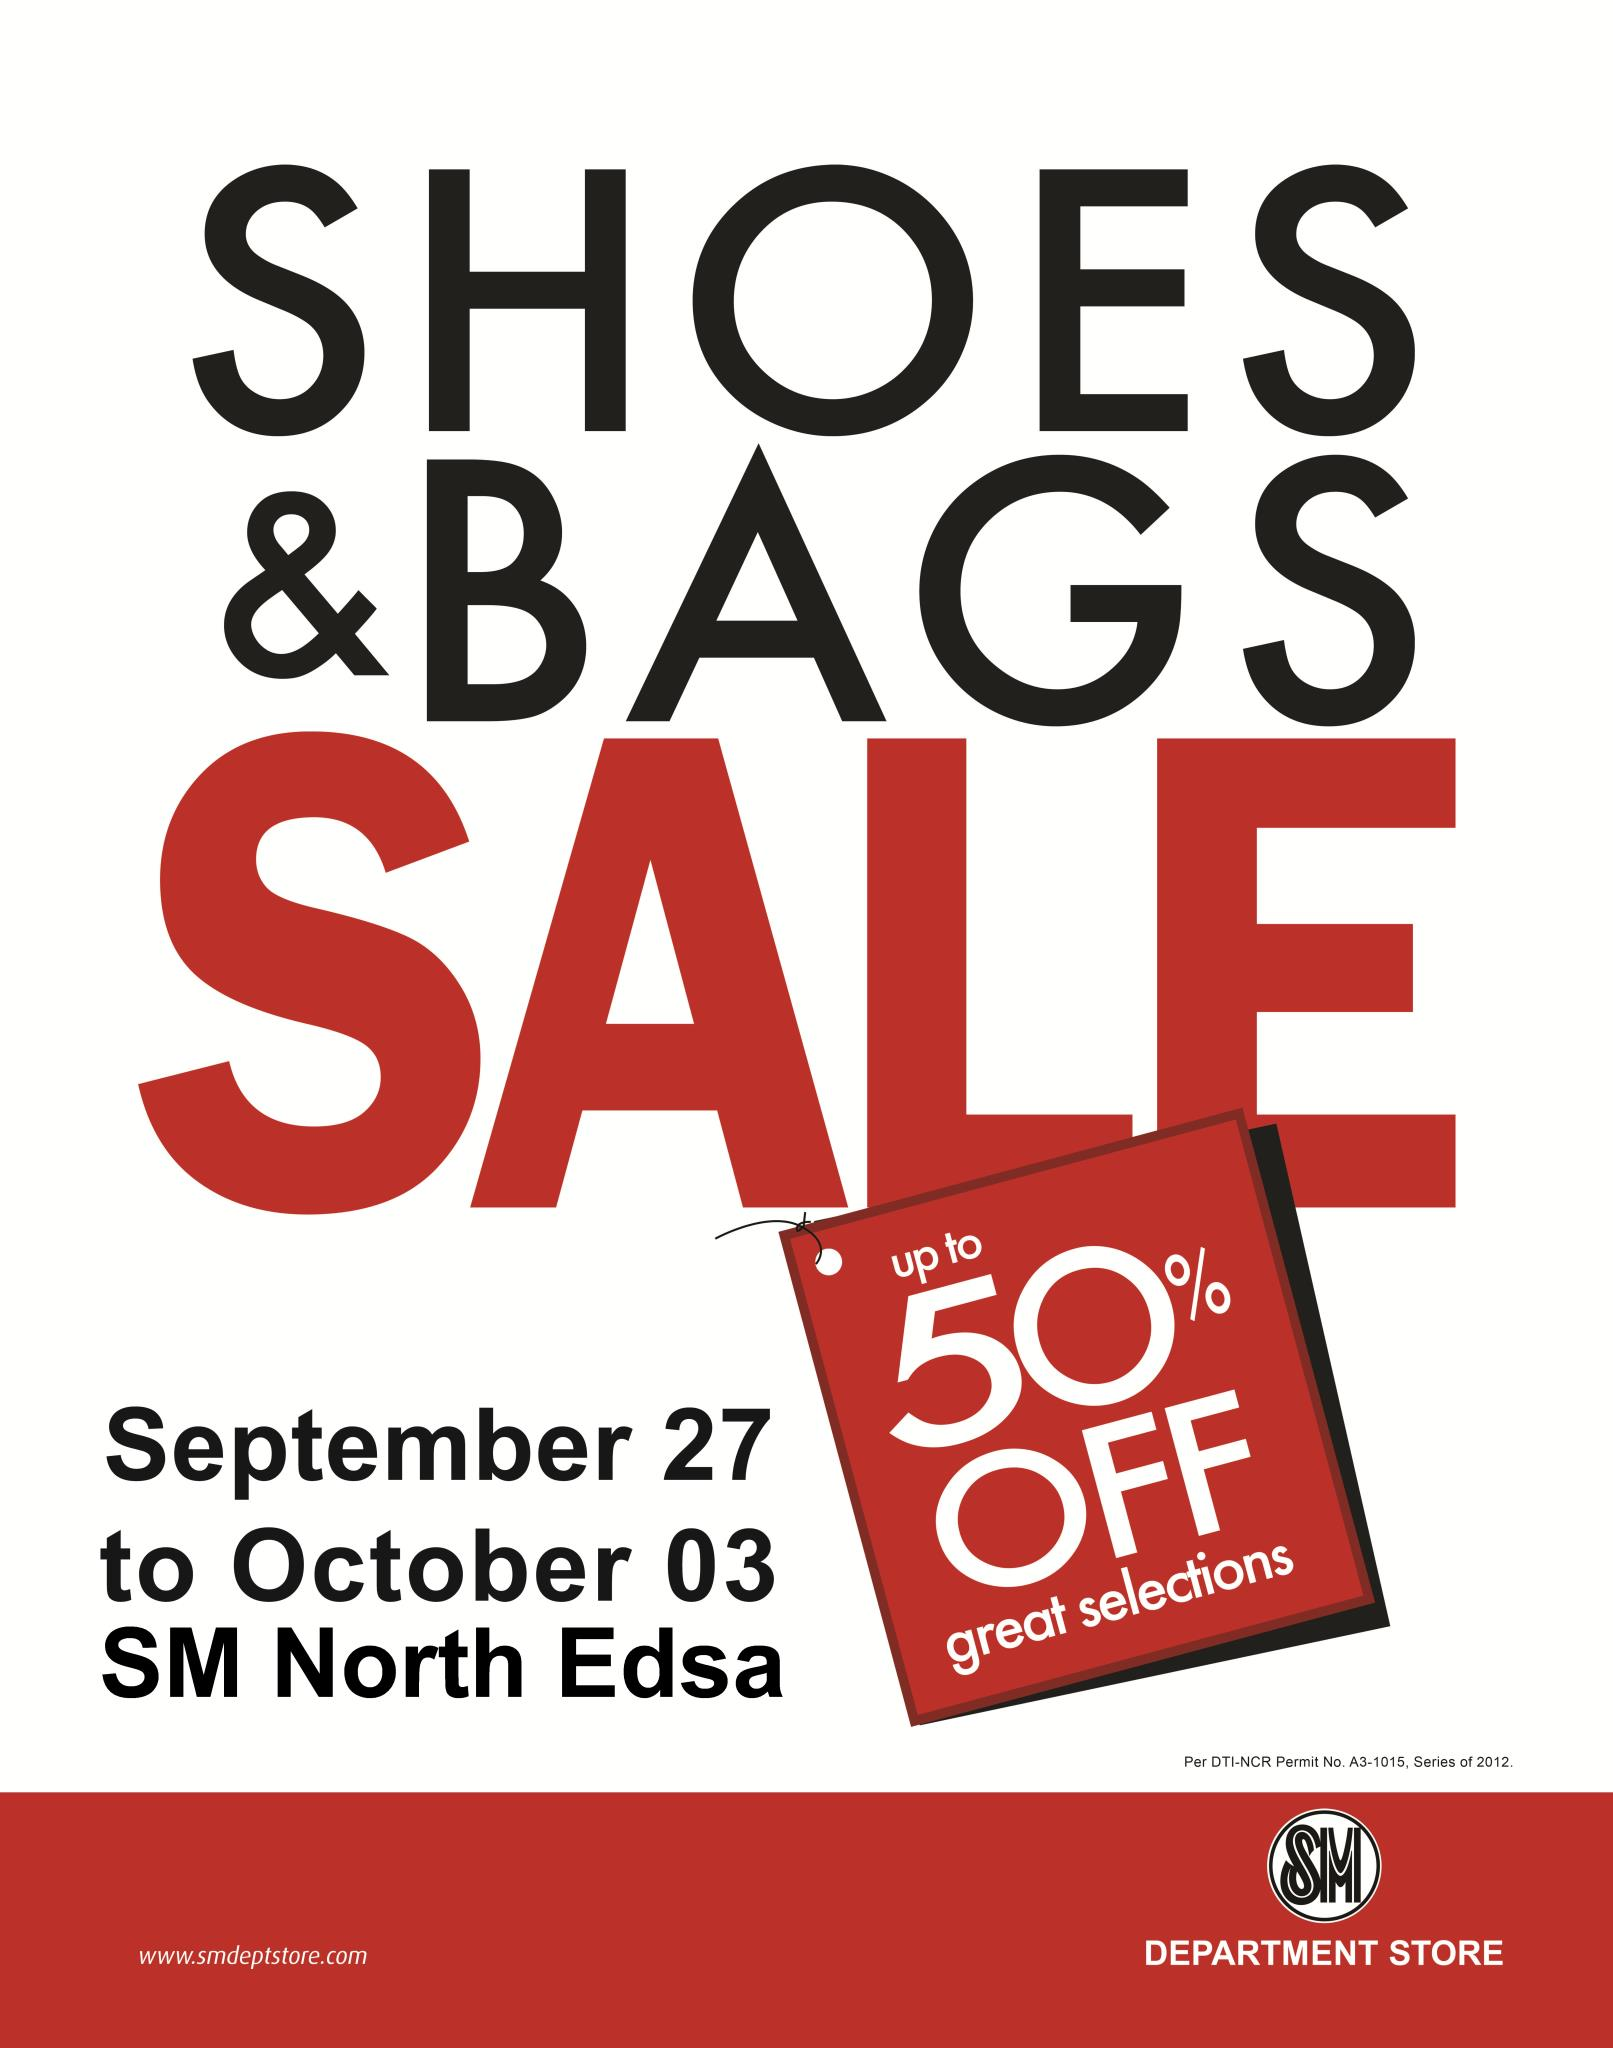 Shoes & Bags Sale @ SM City North Edsa September 2012